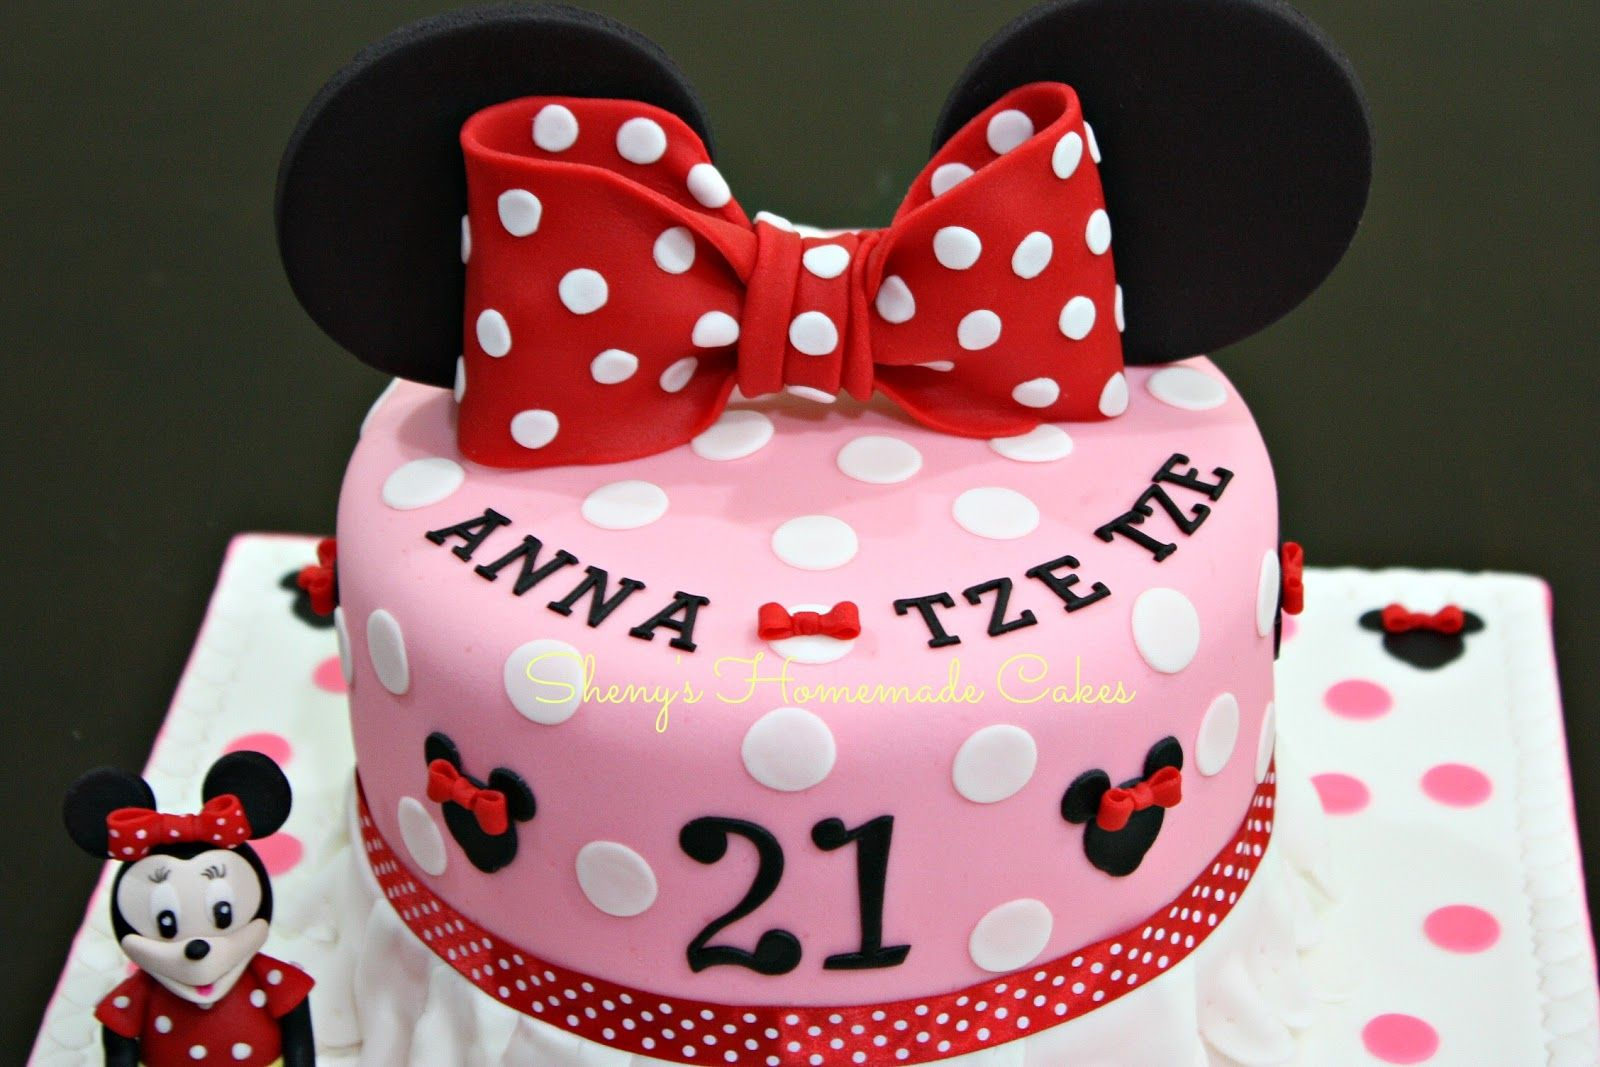 Minnie Mouse Cake 21st birthday cake for a young lady who loves